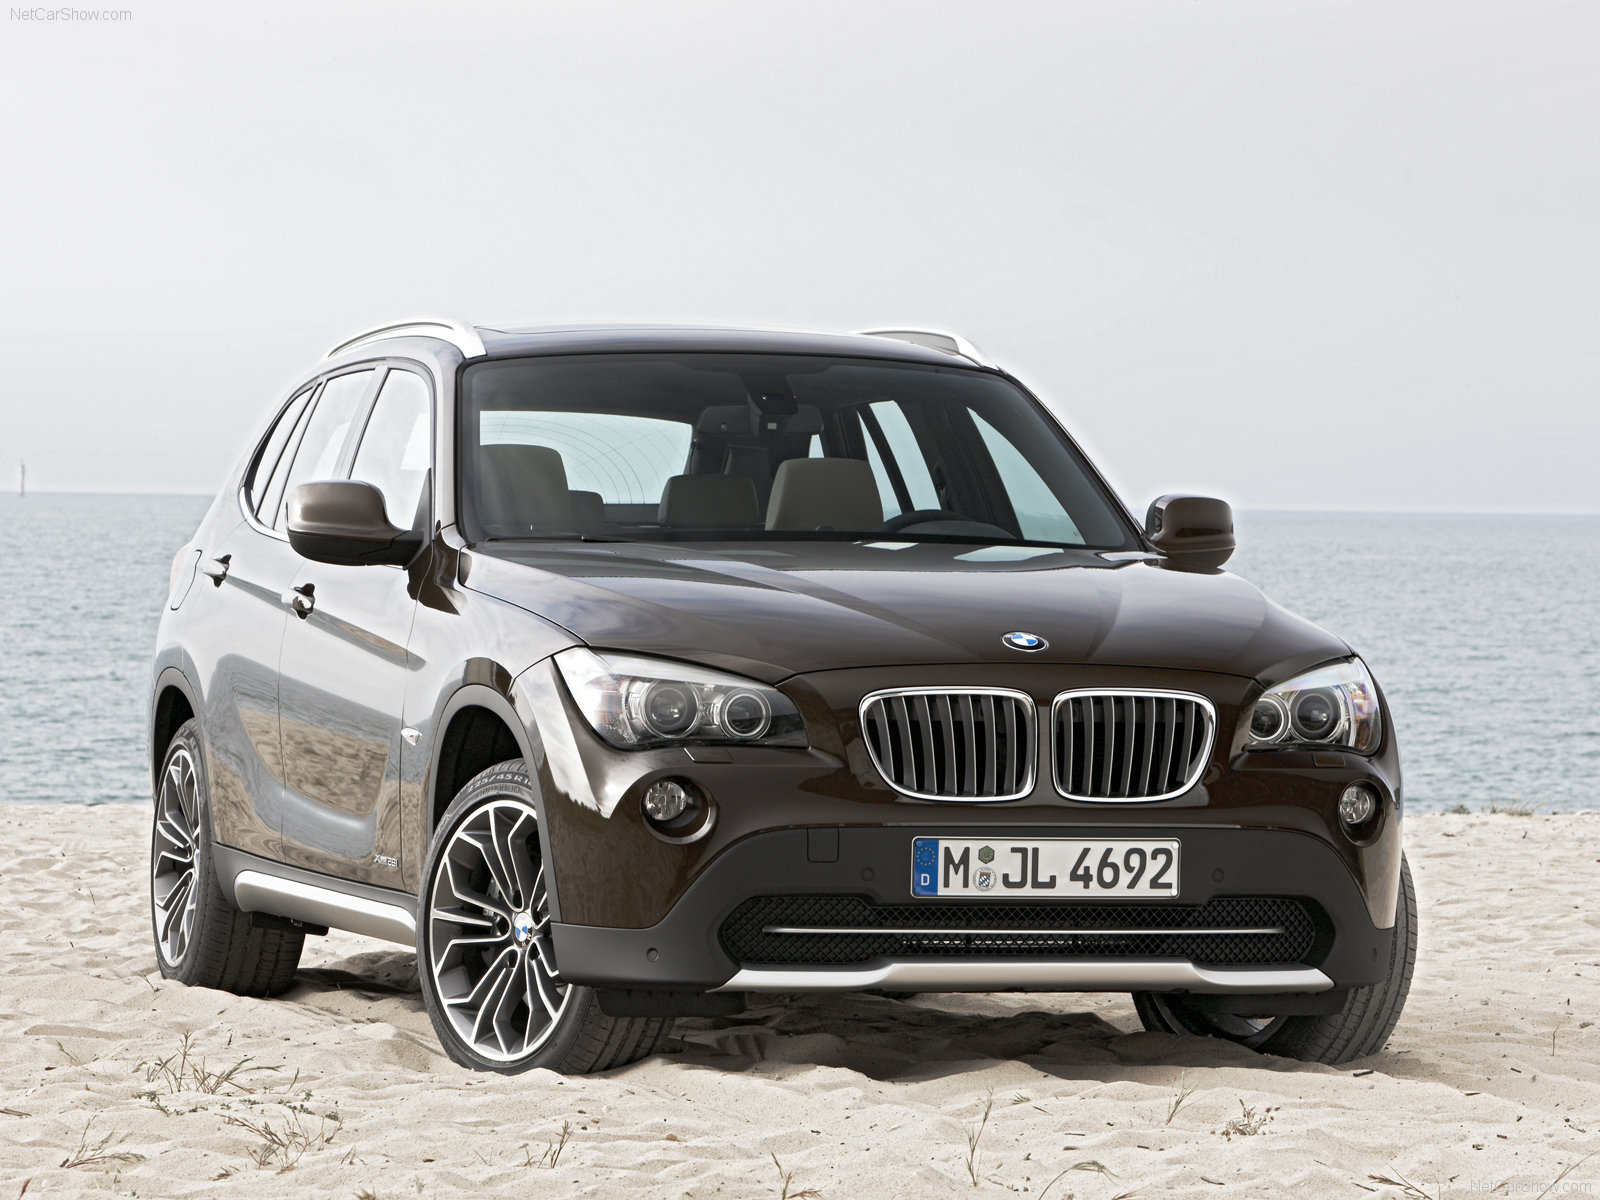 bmw x1 photos photogallery with 699 pics. Black Bedroom Furniture Sets. Home Design Ideas